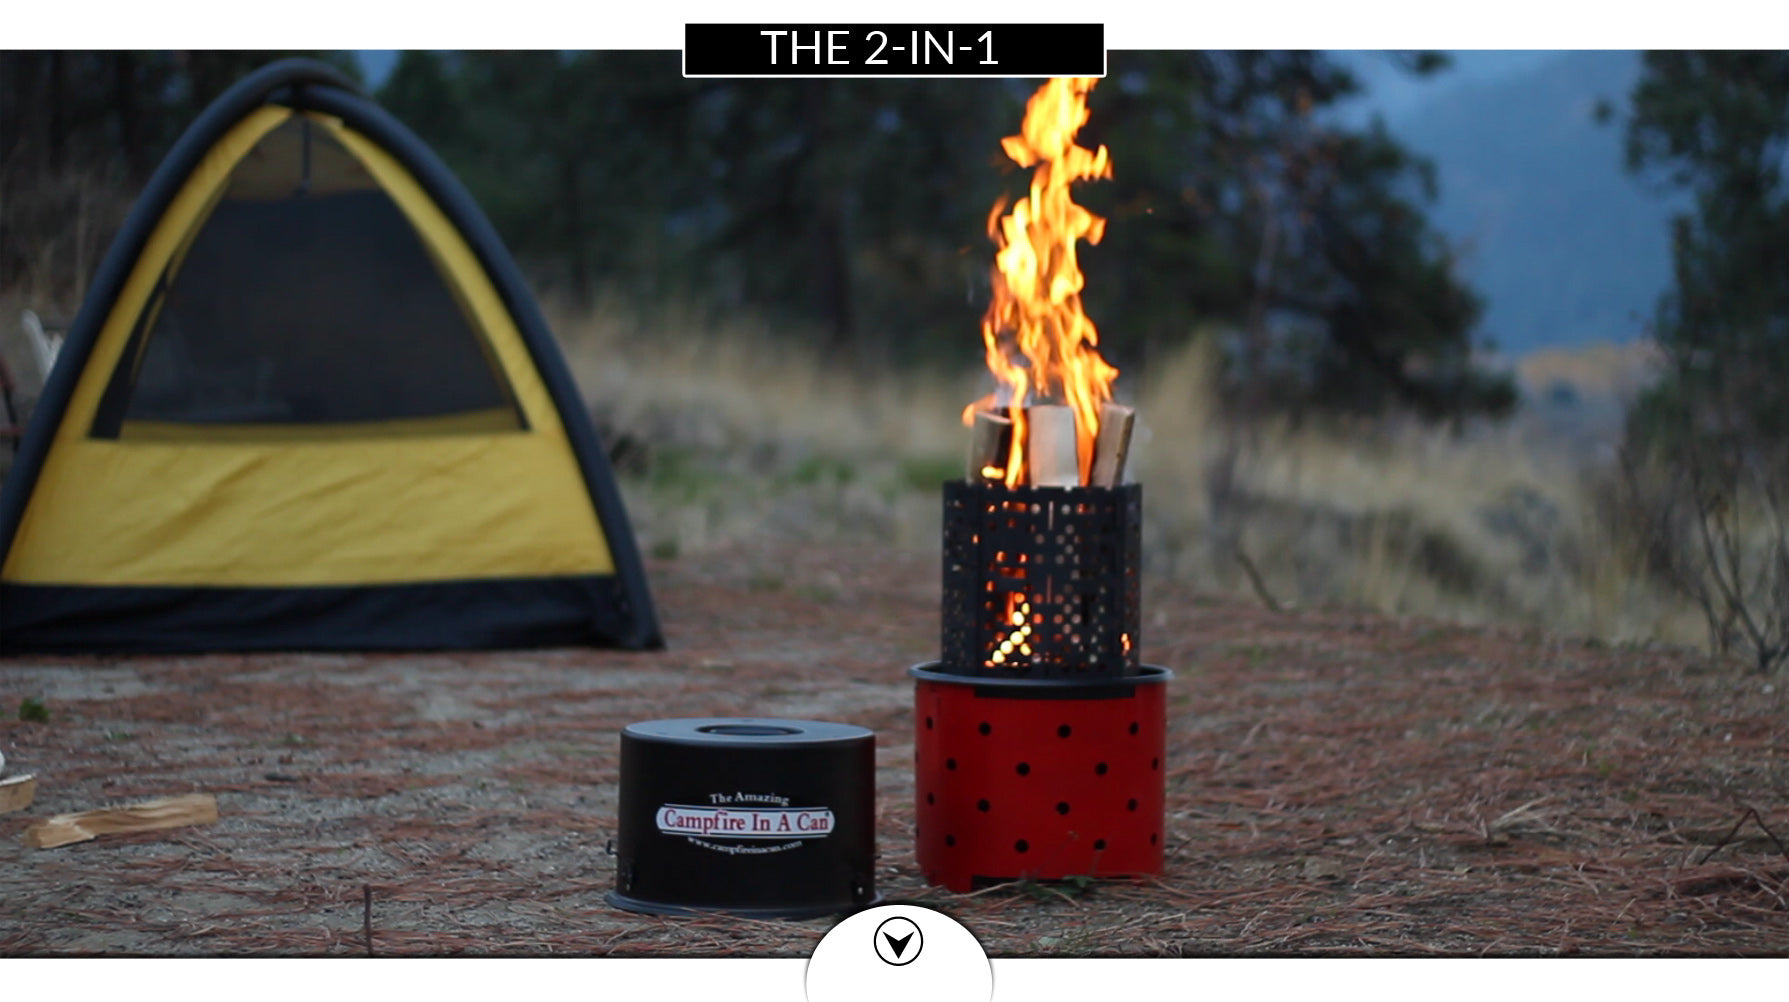 2 in 1 campfire in a can